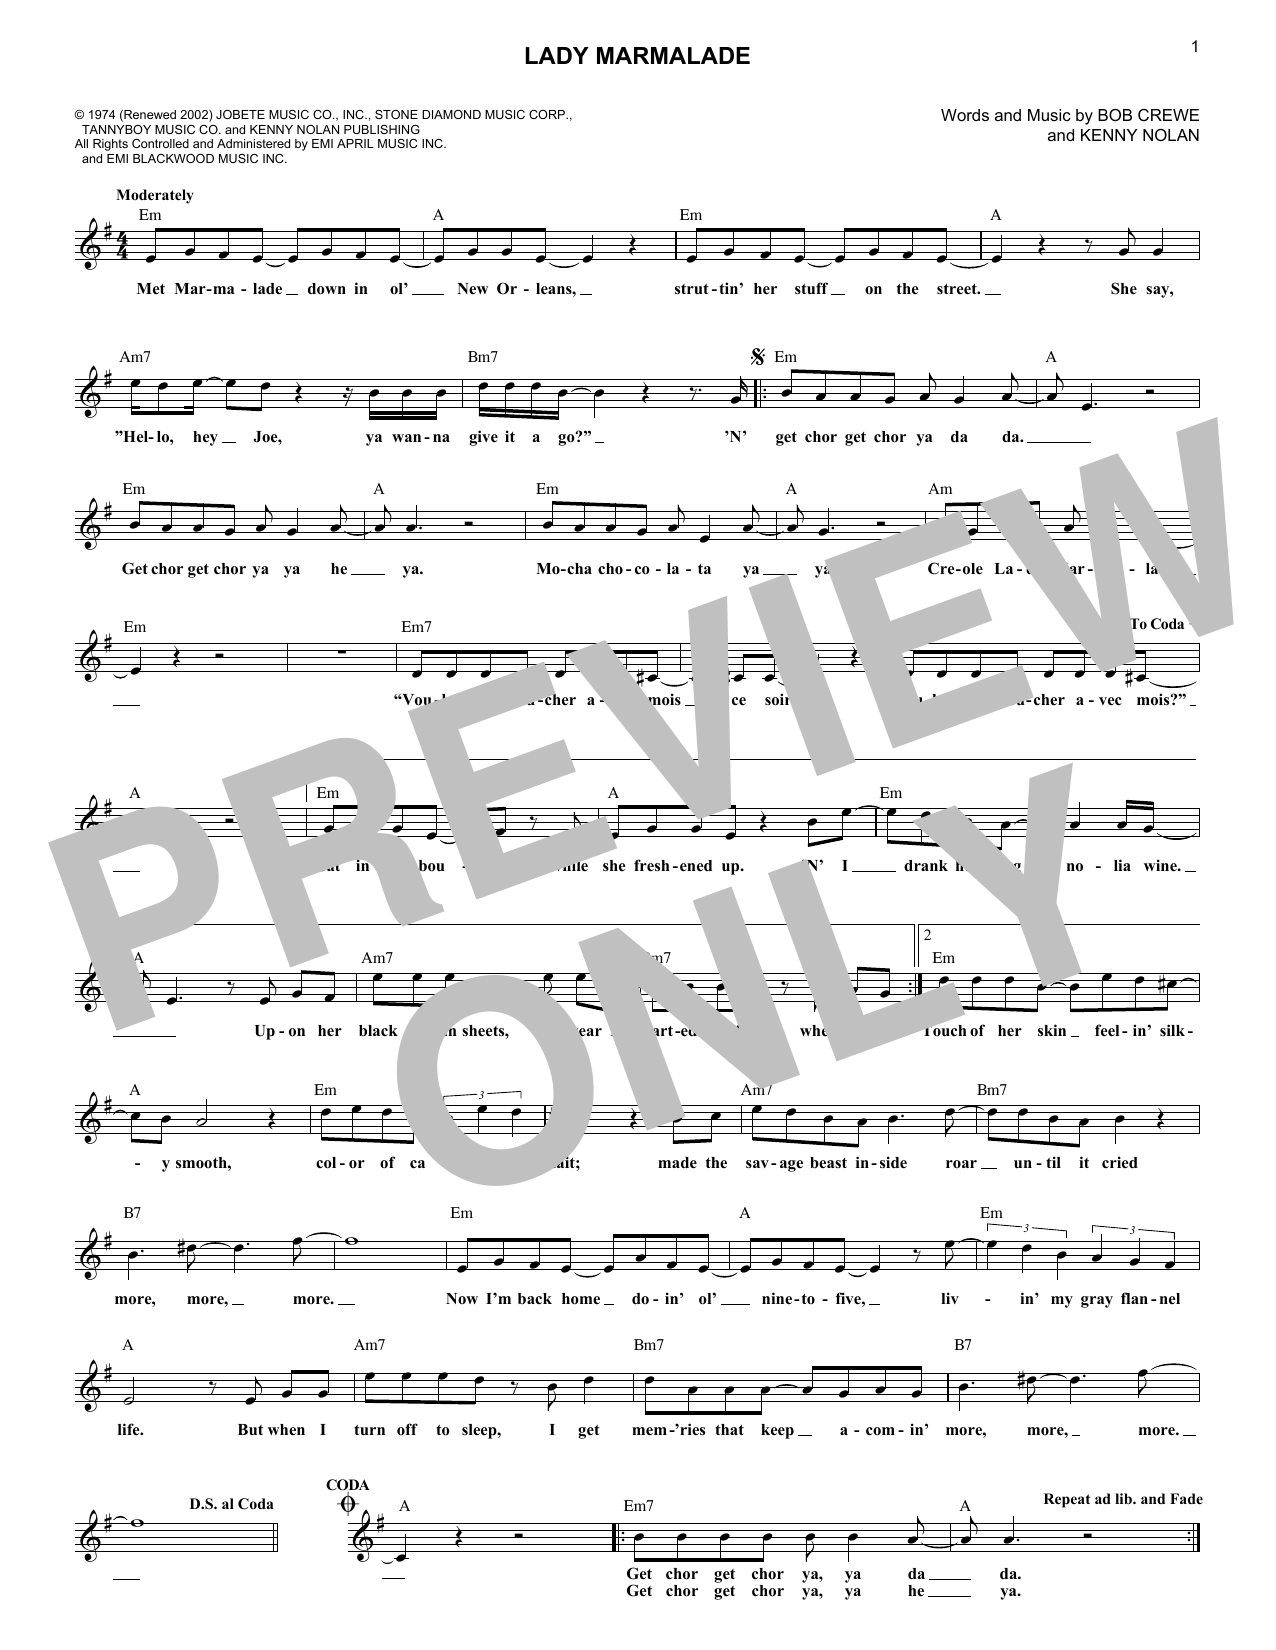 Patty LaBelle Lady Marmalade sheet music notes and chords